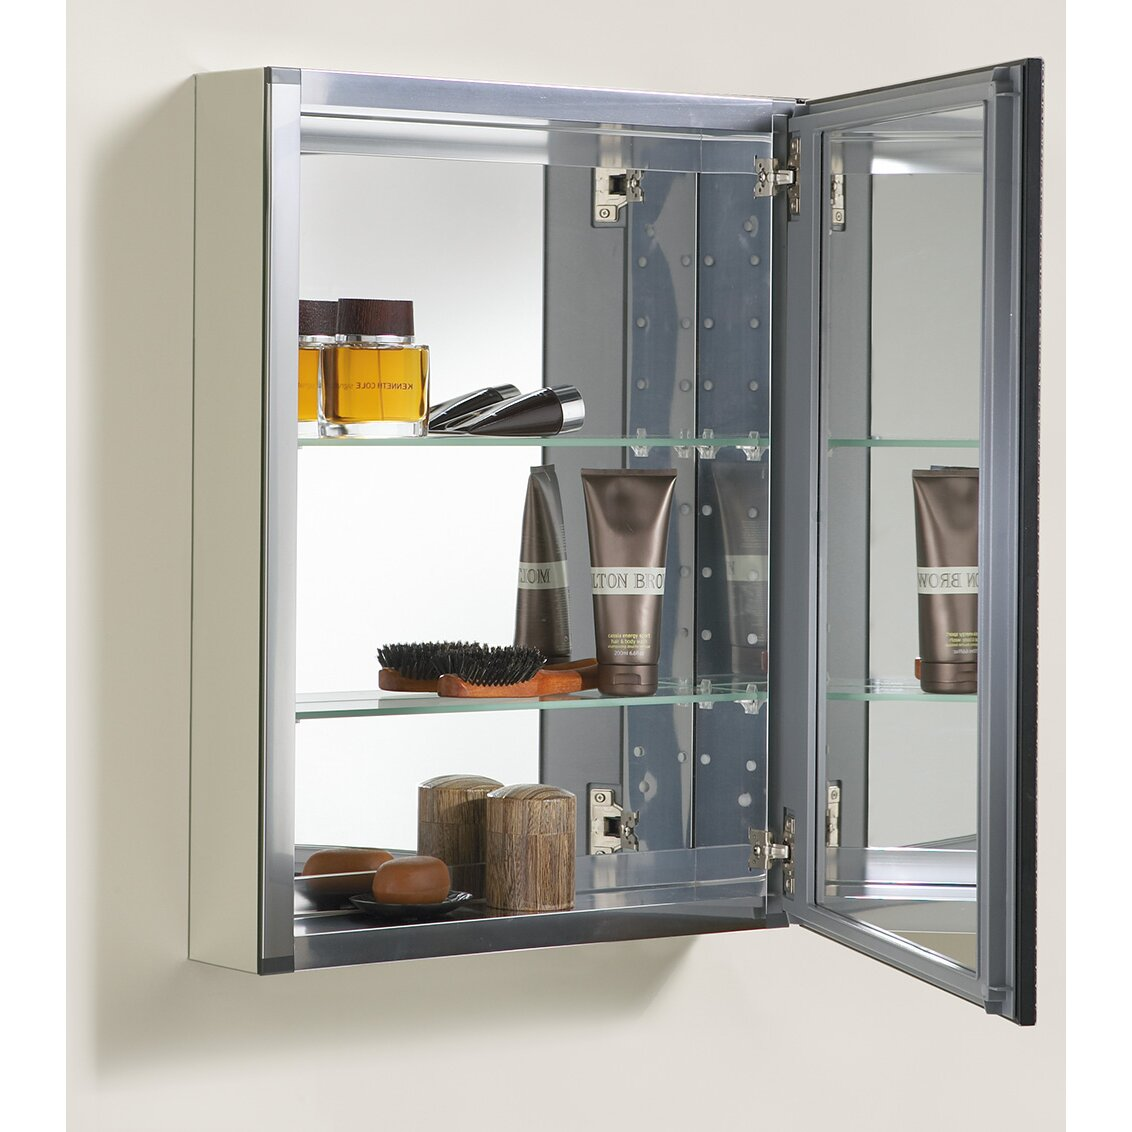 Kohler 20 X 26 Wall Mount Mirrored Medicine Cabinet With